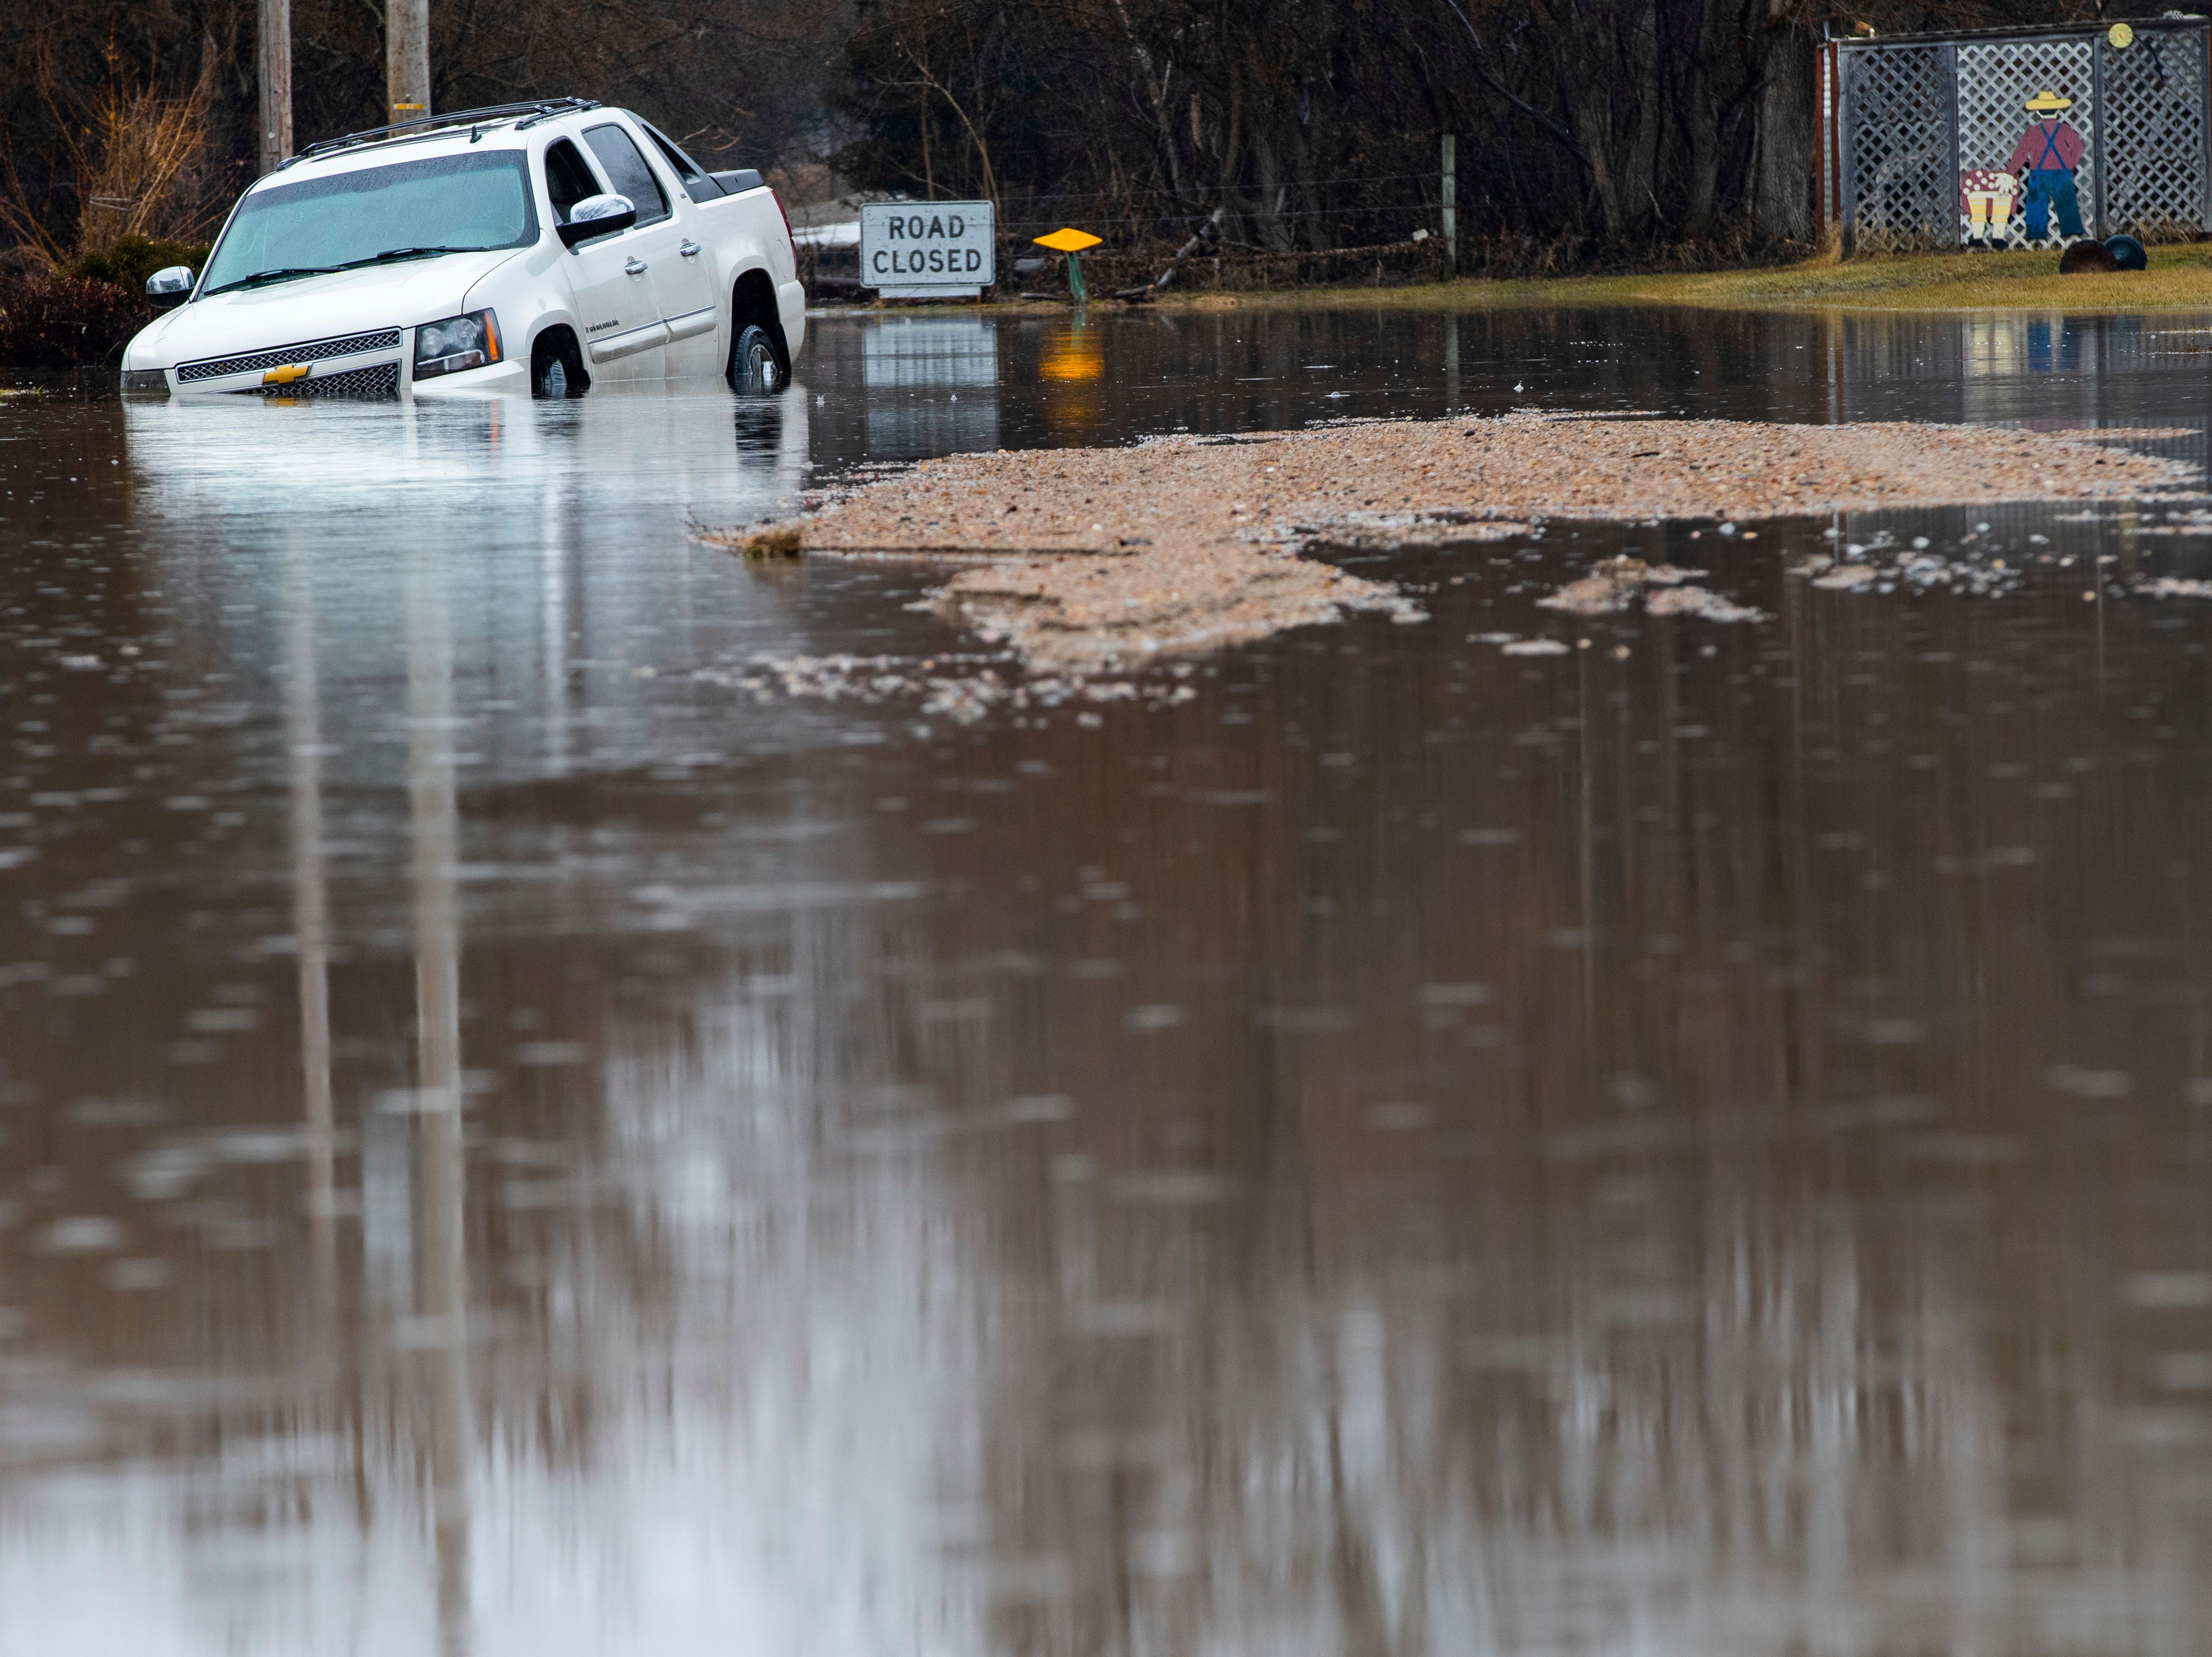 A vehicle is stuck in floodwaters Tuesday, March 19, 2019, in Fremont, Neb. Flooding is expected throughout the week in several states as high water levels flow down the Missouri River. Swollen rivers have already breached more than a dozen levees in Nebraska, Iowa and Missouri, according to the U.S. Army Corps of Engineers.